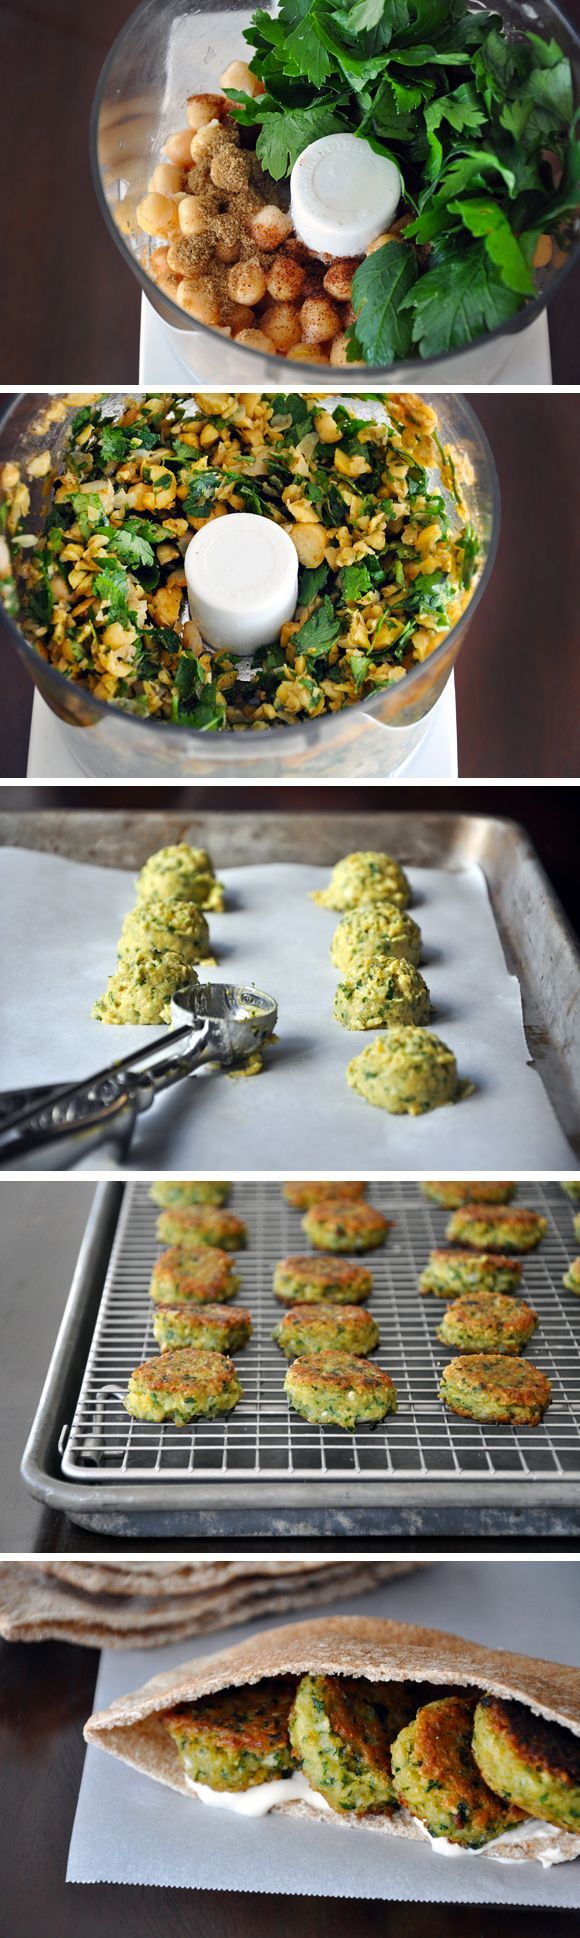 How to Make Homemade Falafel